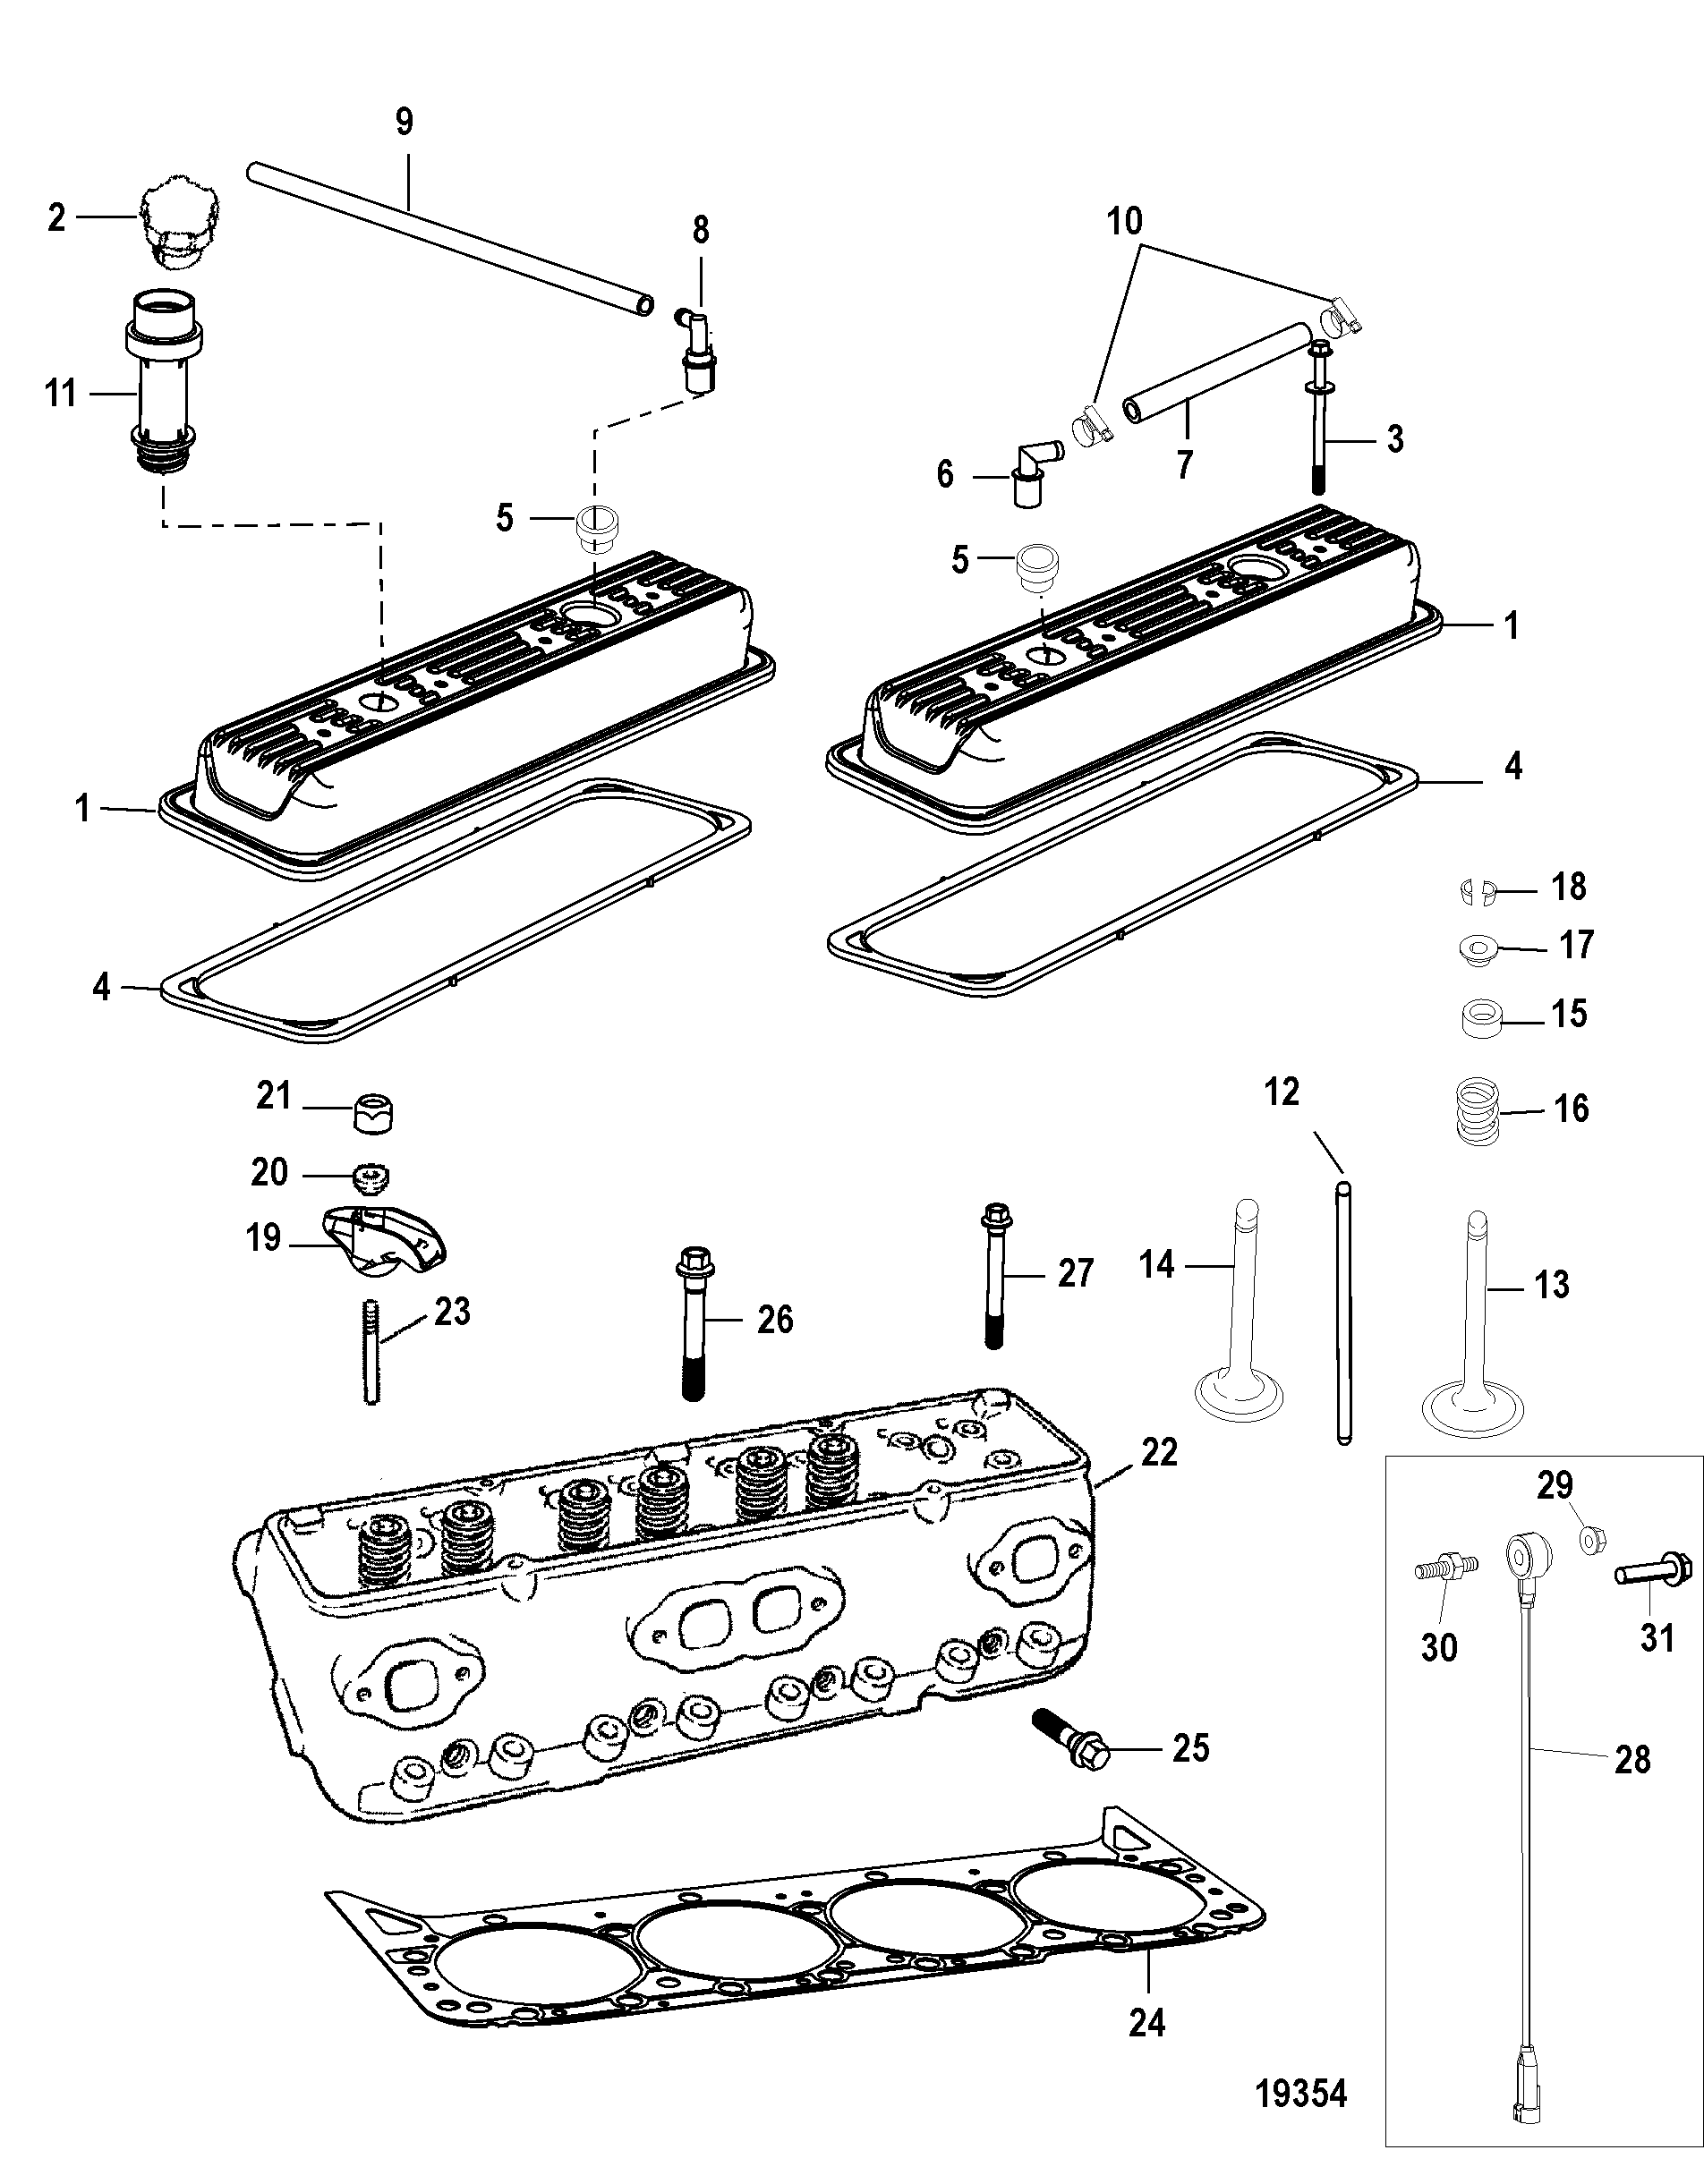 mercruiser 377 mag mpi bravo 1a623185 Mercruiser Electrical System Wiring Diagrams cylinder head and rocker cover